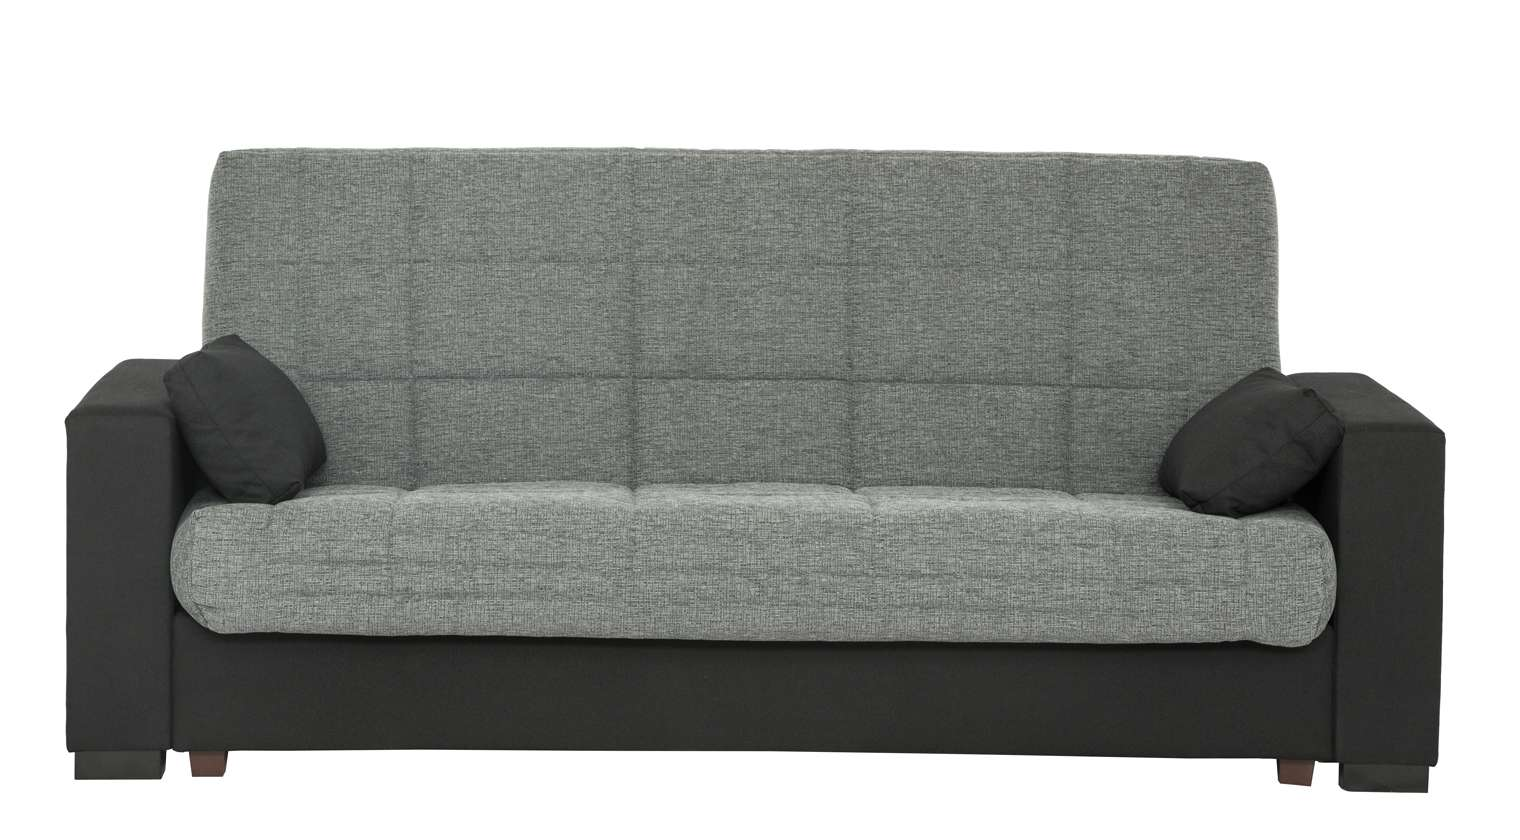 Comprar sofa beautiful cama abatible sofa valencia with comprar sofa trendy inicio sofas cama - Dazzling sofas baratos beautifying your house ...